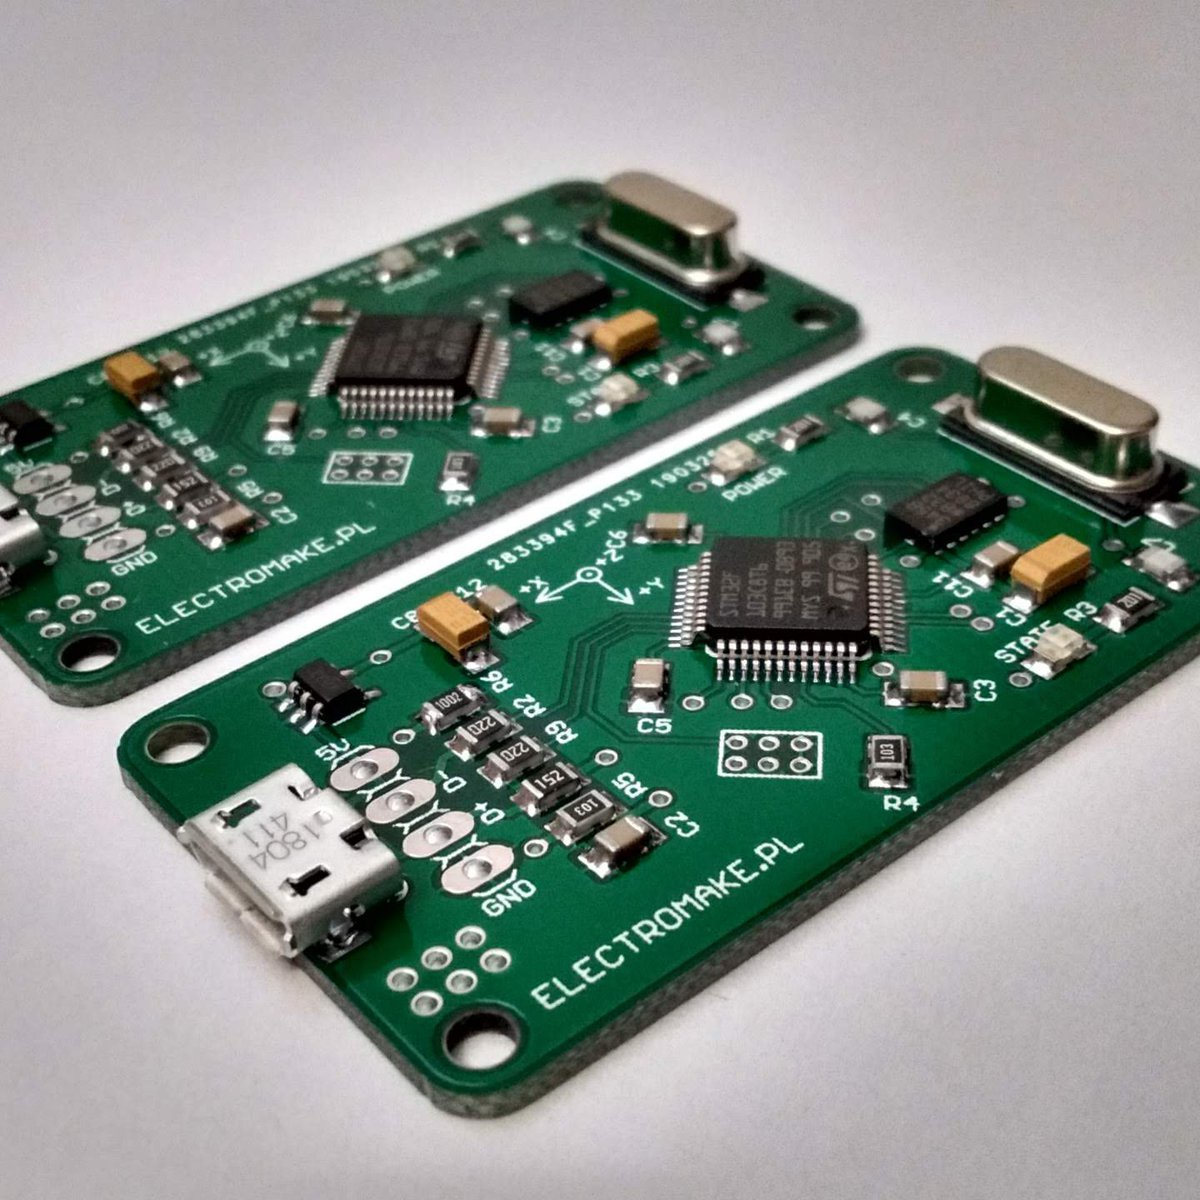 3 axis USB accelerometer from electromake on Tindie